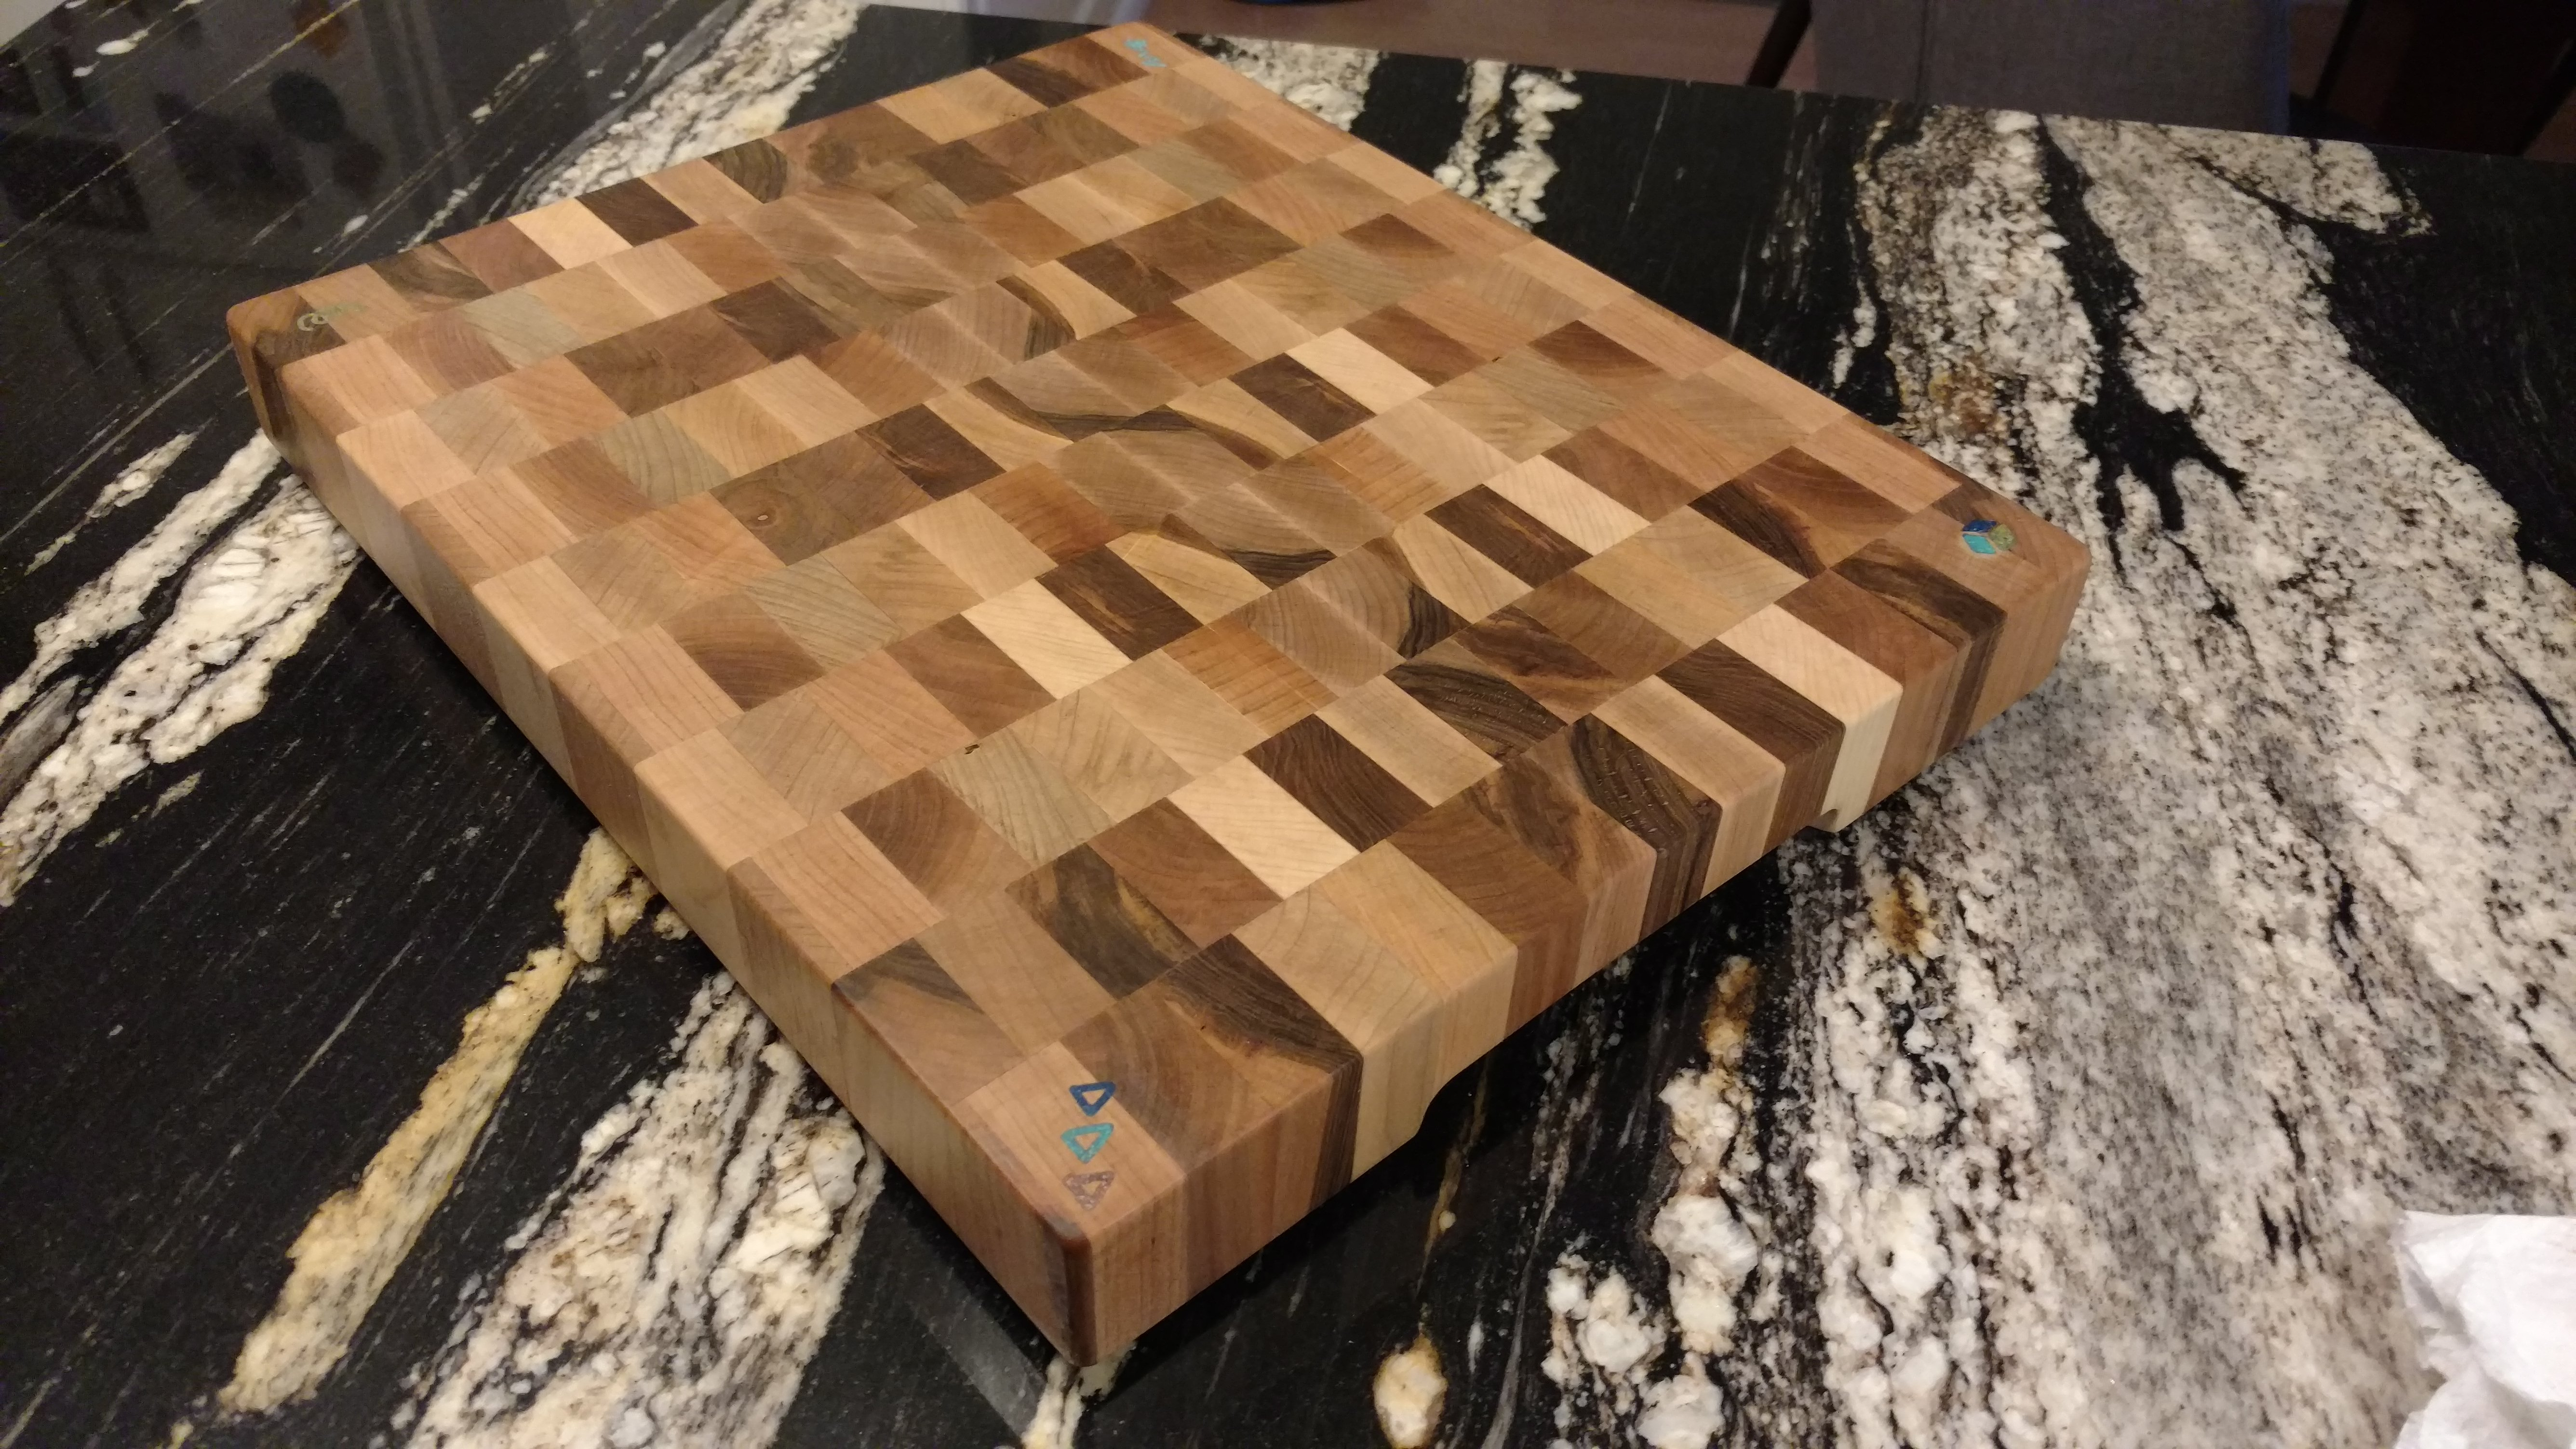 Elevation Woodwork : End grain cutting boards welcome to high elevation